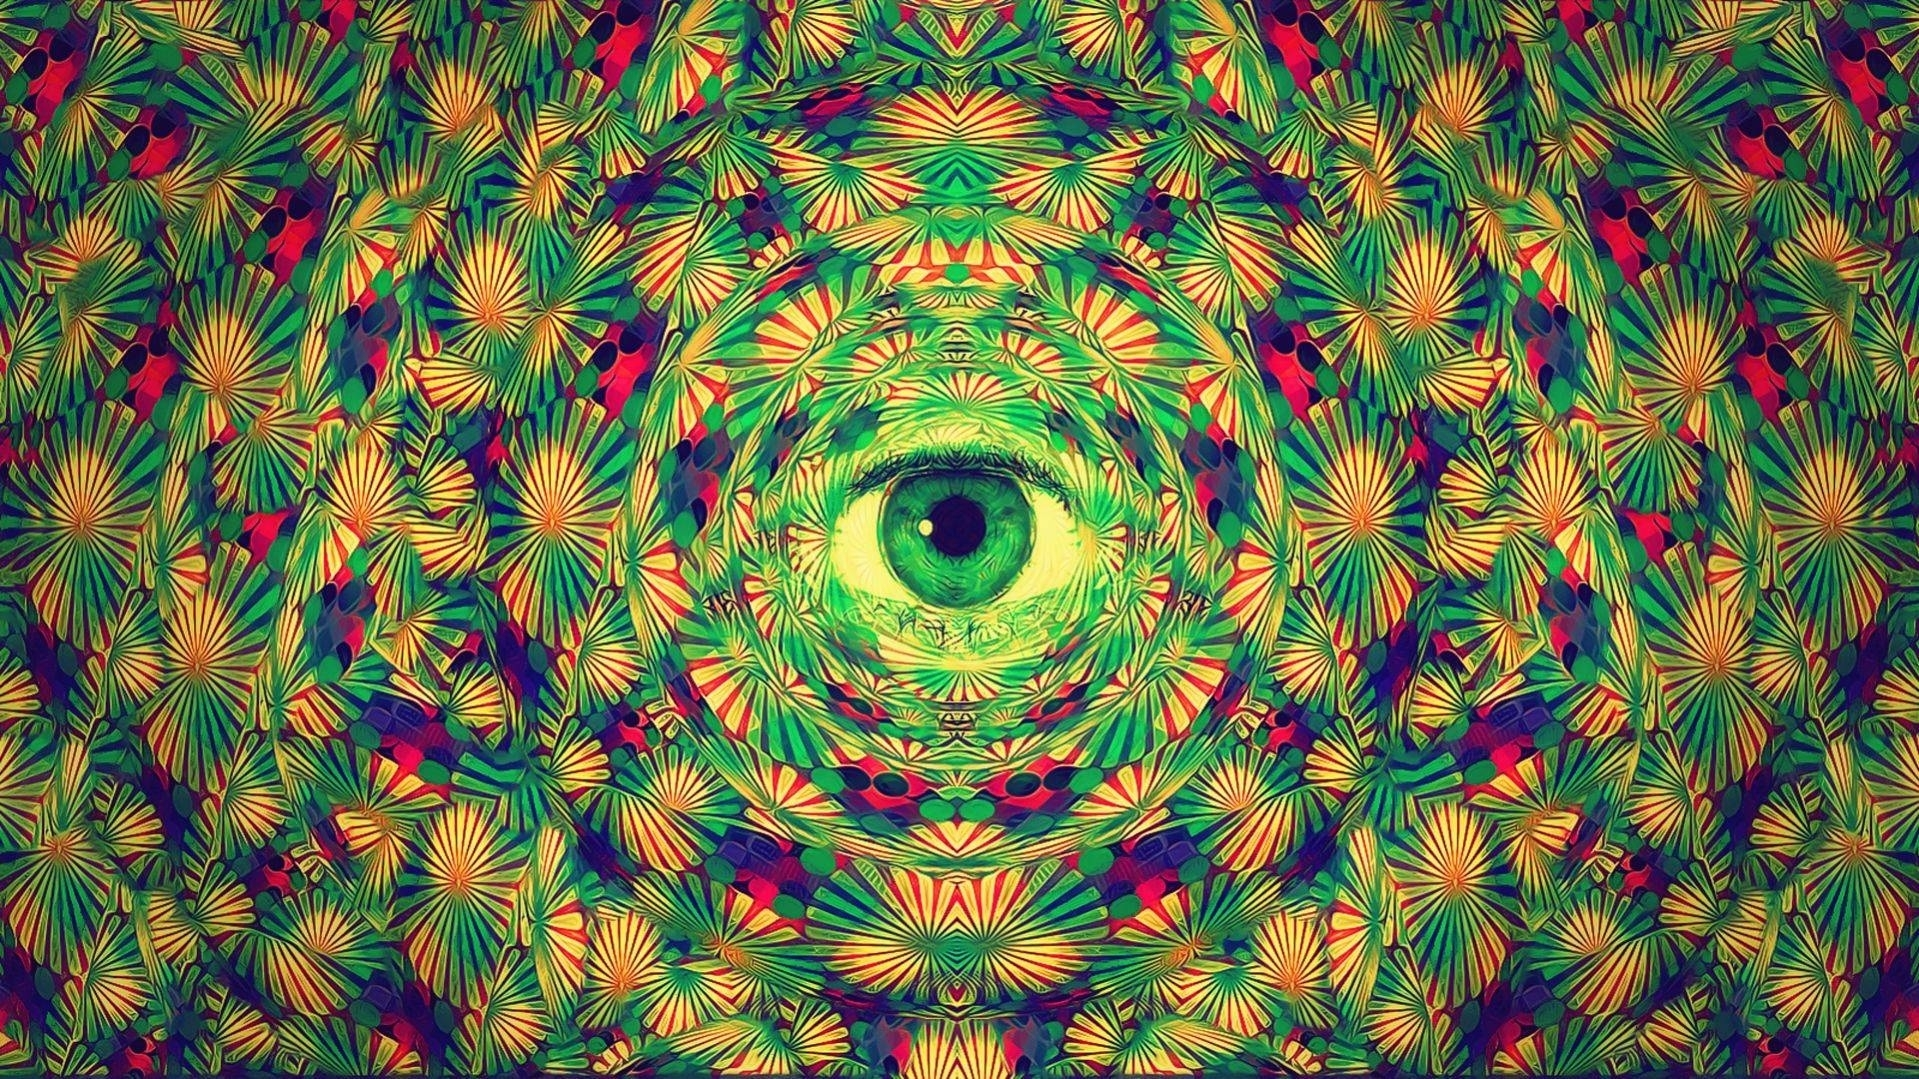 trippy acid wallpaper high resolution backgrounds trip background